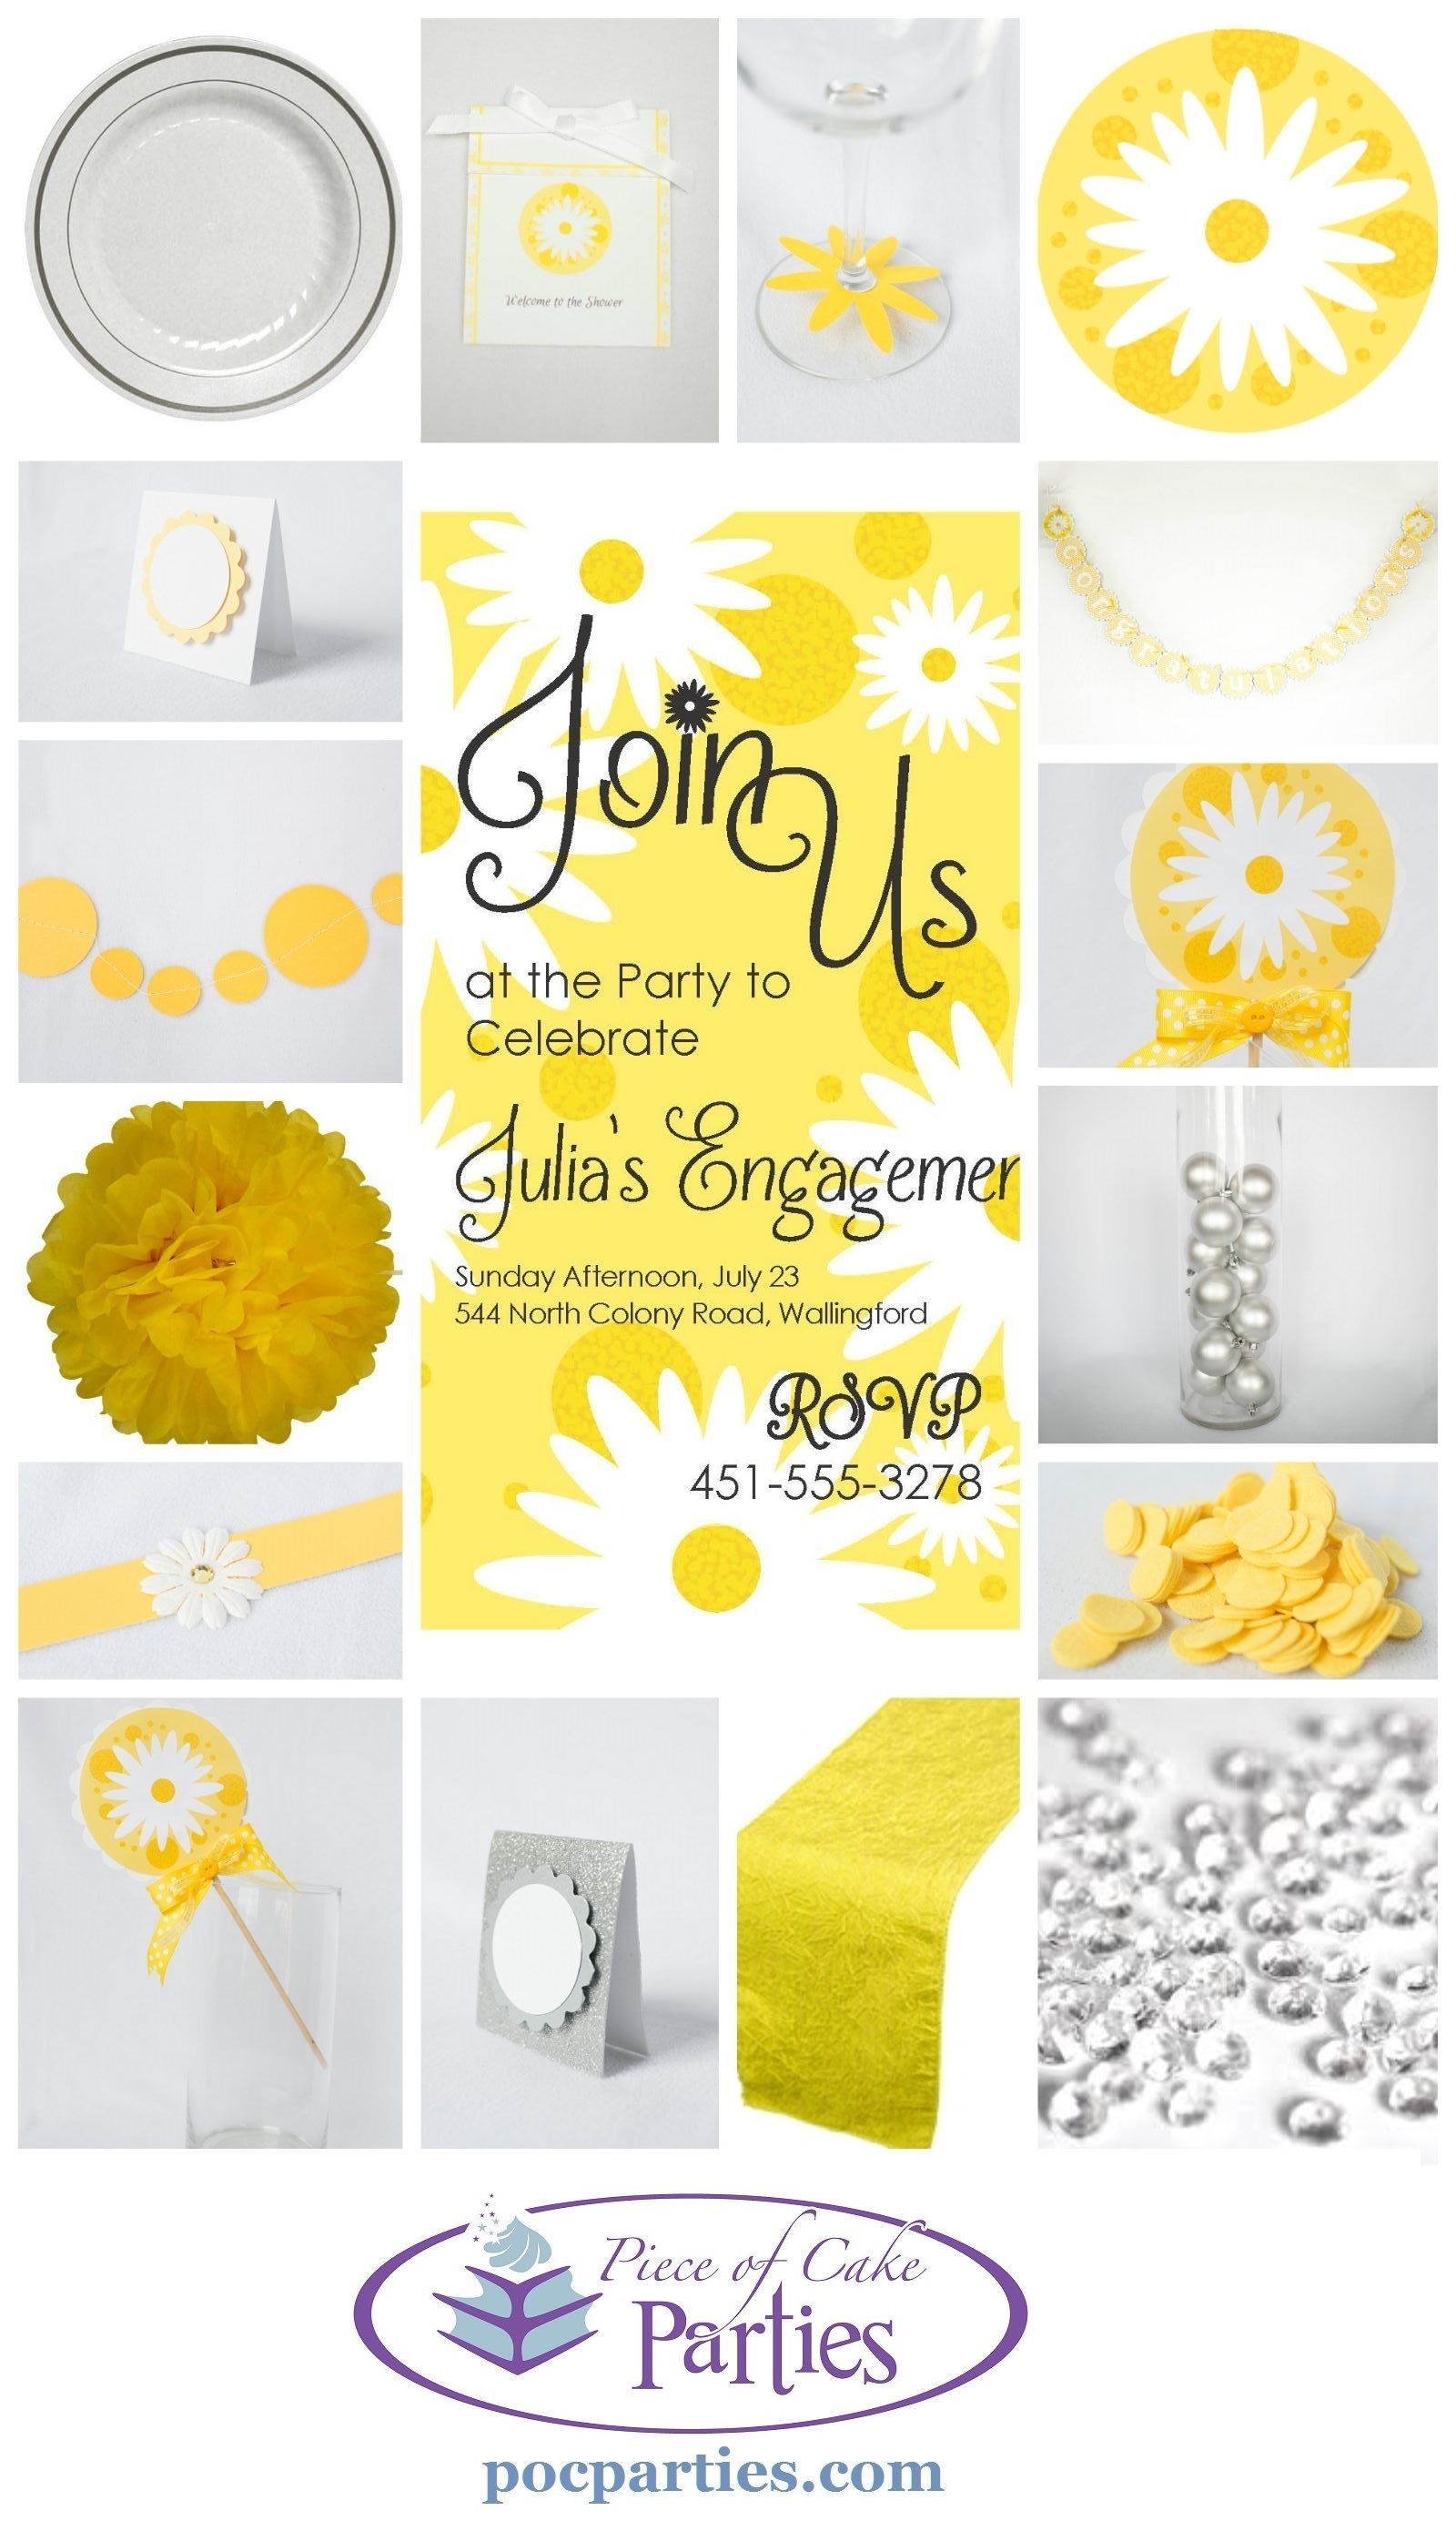 All things cute for a daisy bridal shower or baby shower.  By Piece of Cake Parties.  Charming.  Effortless.  Affordable.